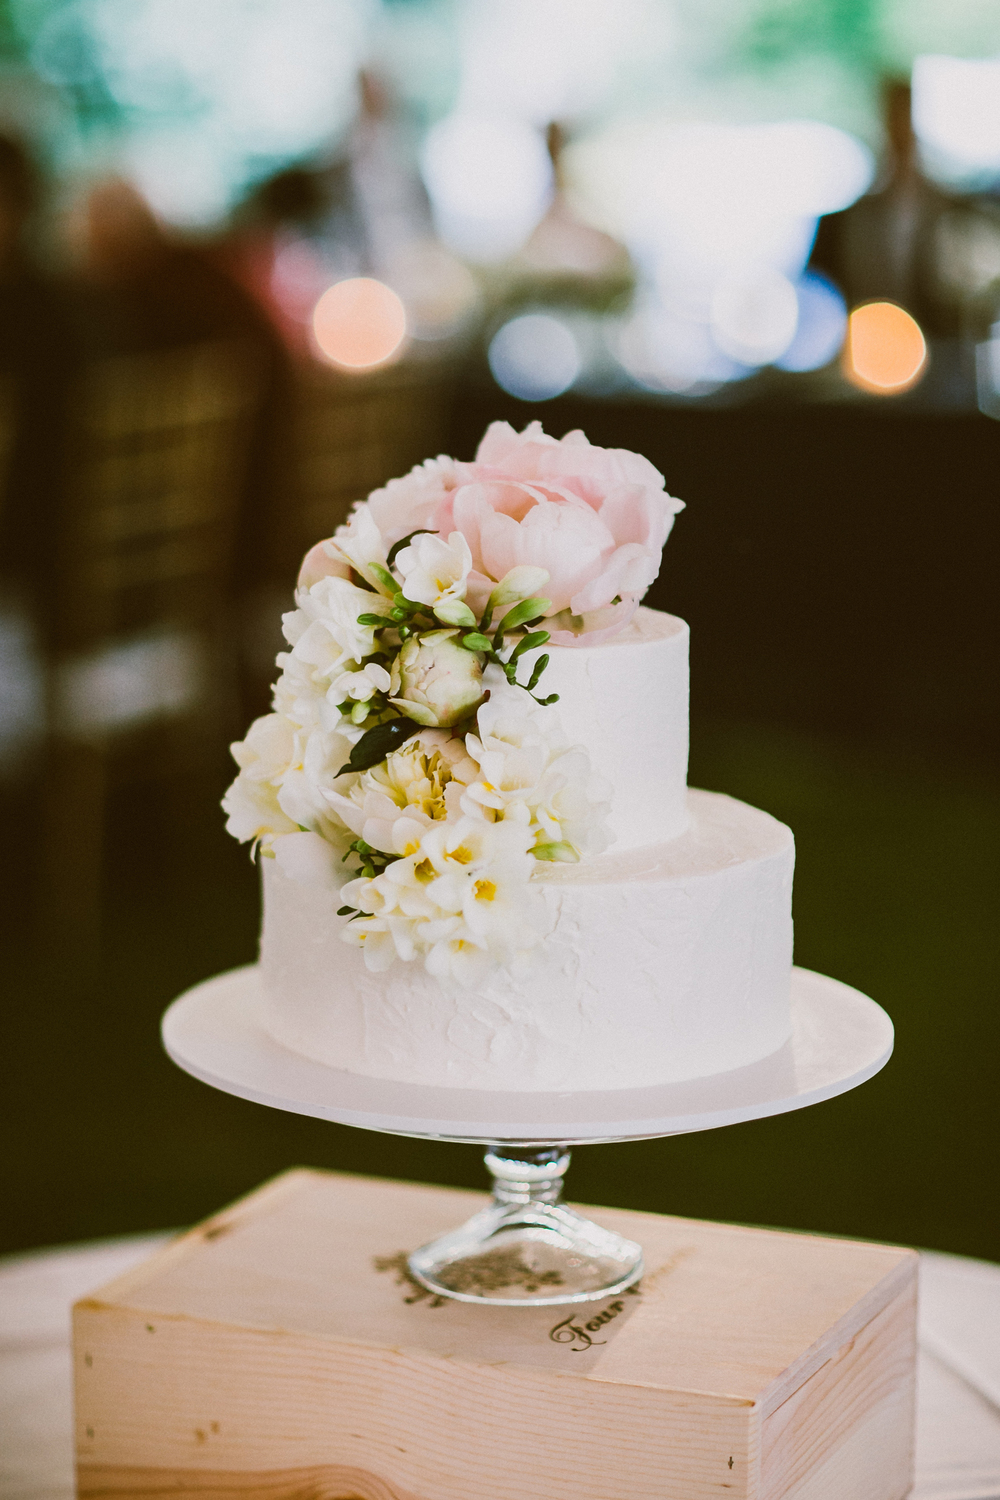 Bridalbliss.com | Portland Wedding | Oregon Event Planning and Design | Christy Cassano Photography